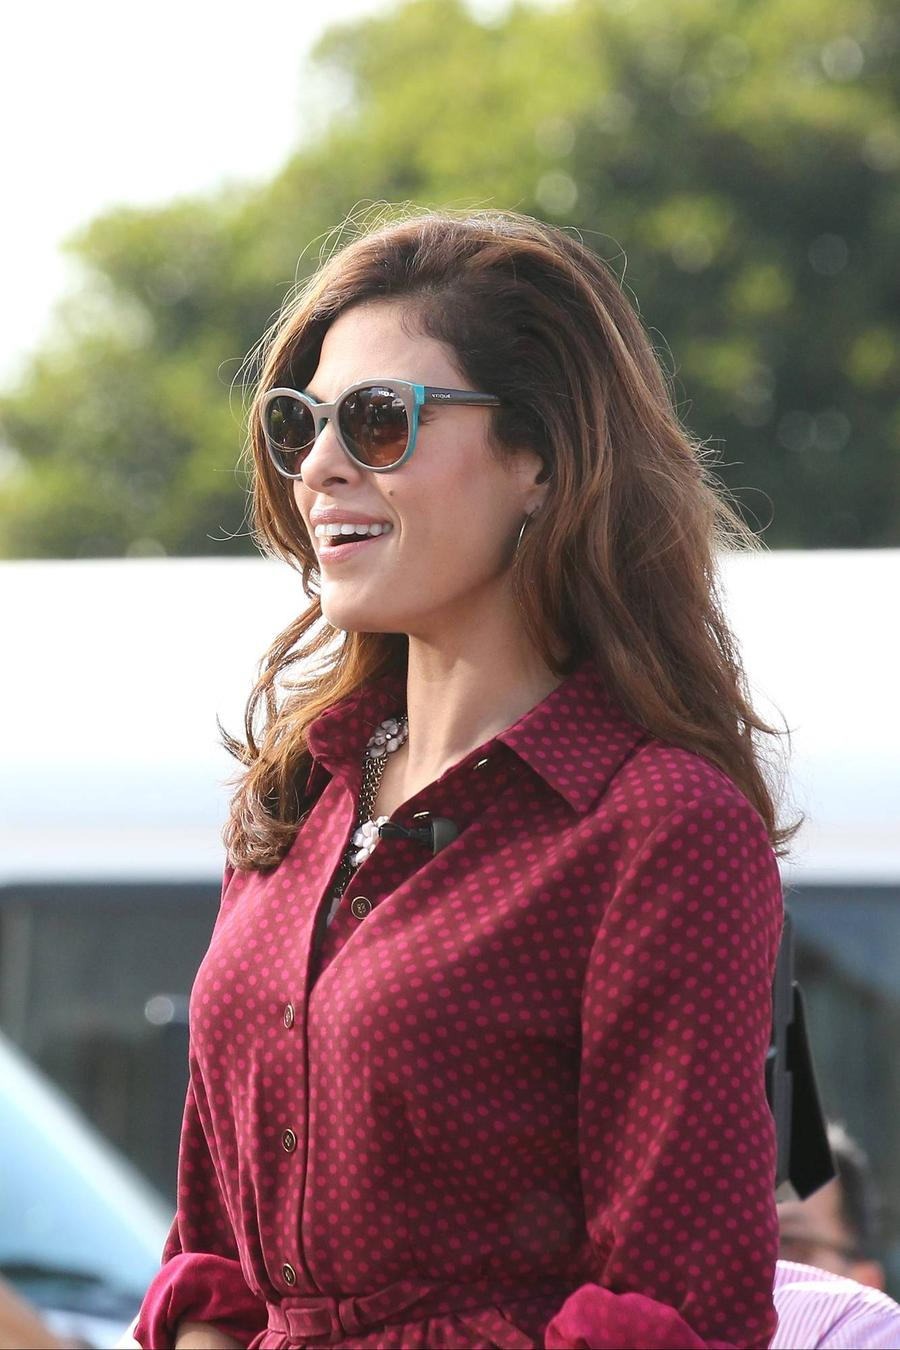 Eva Mendes Gives Birth In Secret - Report